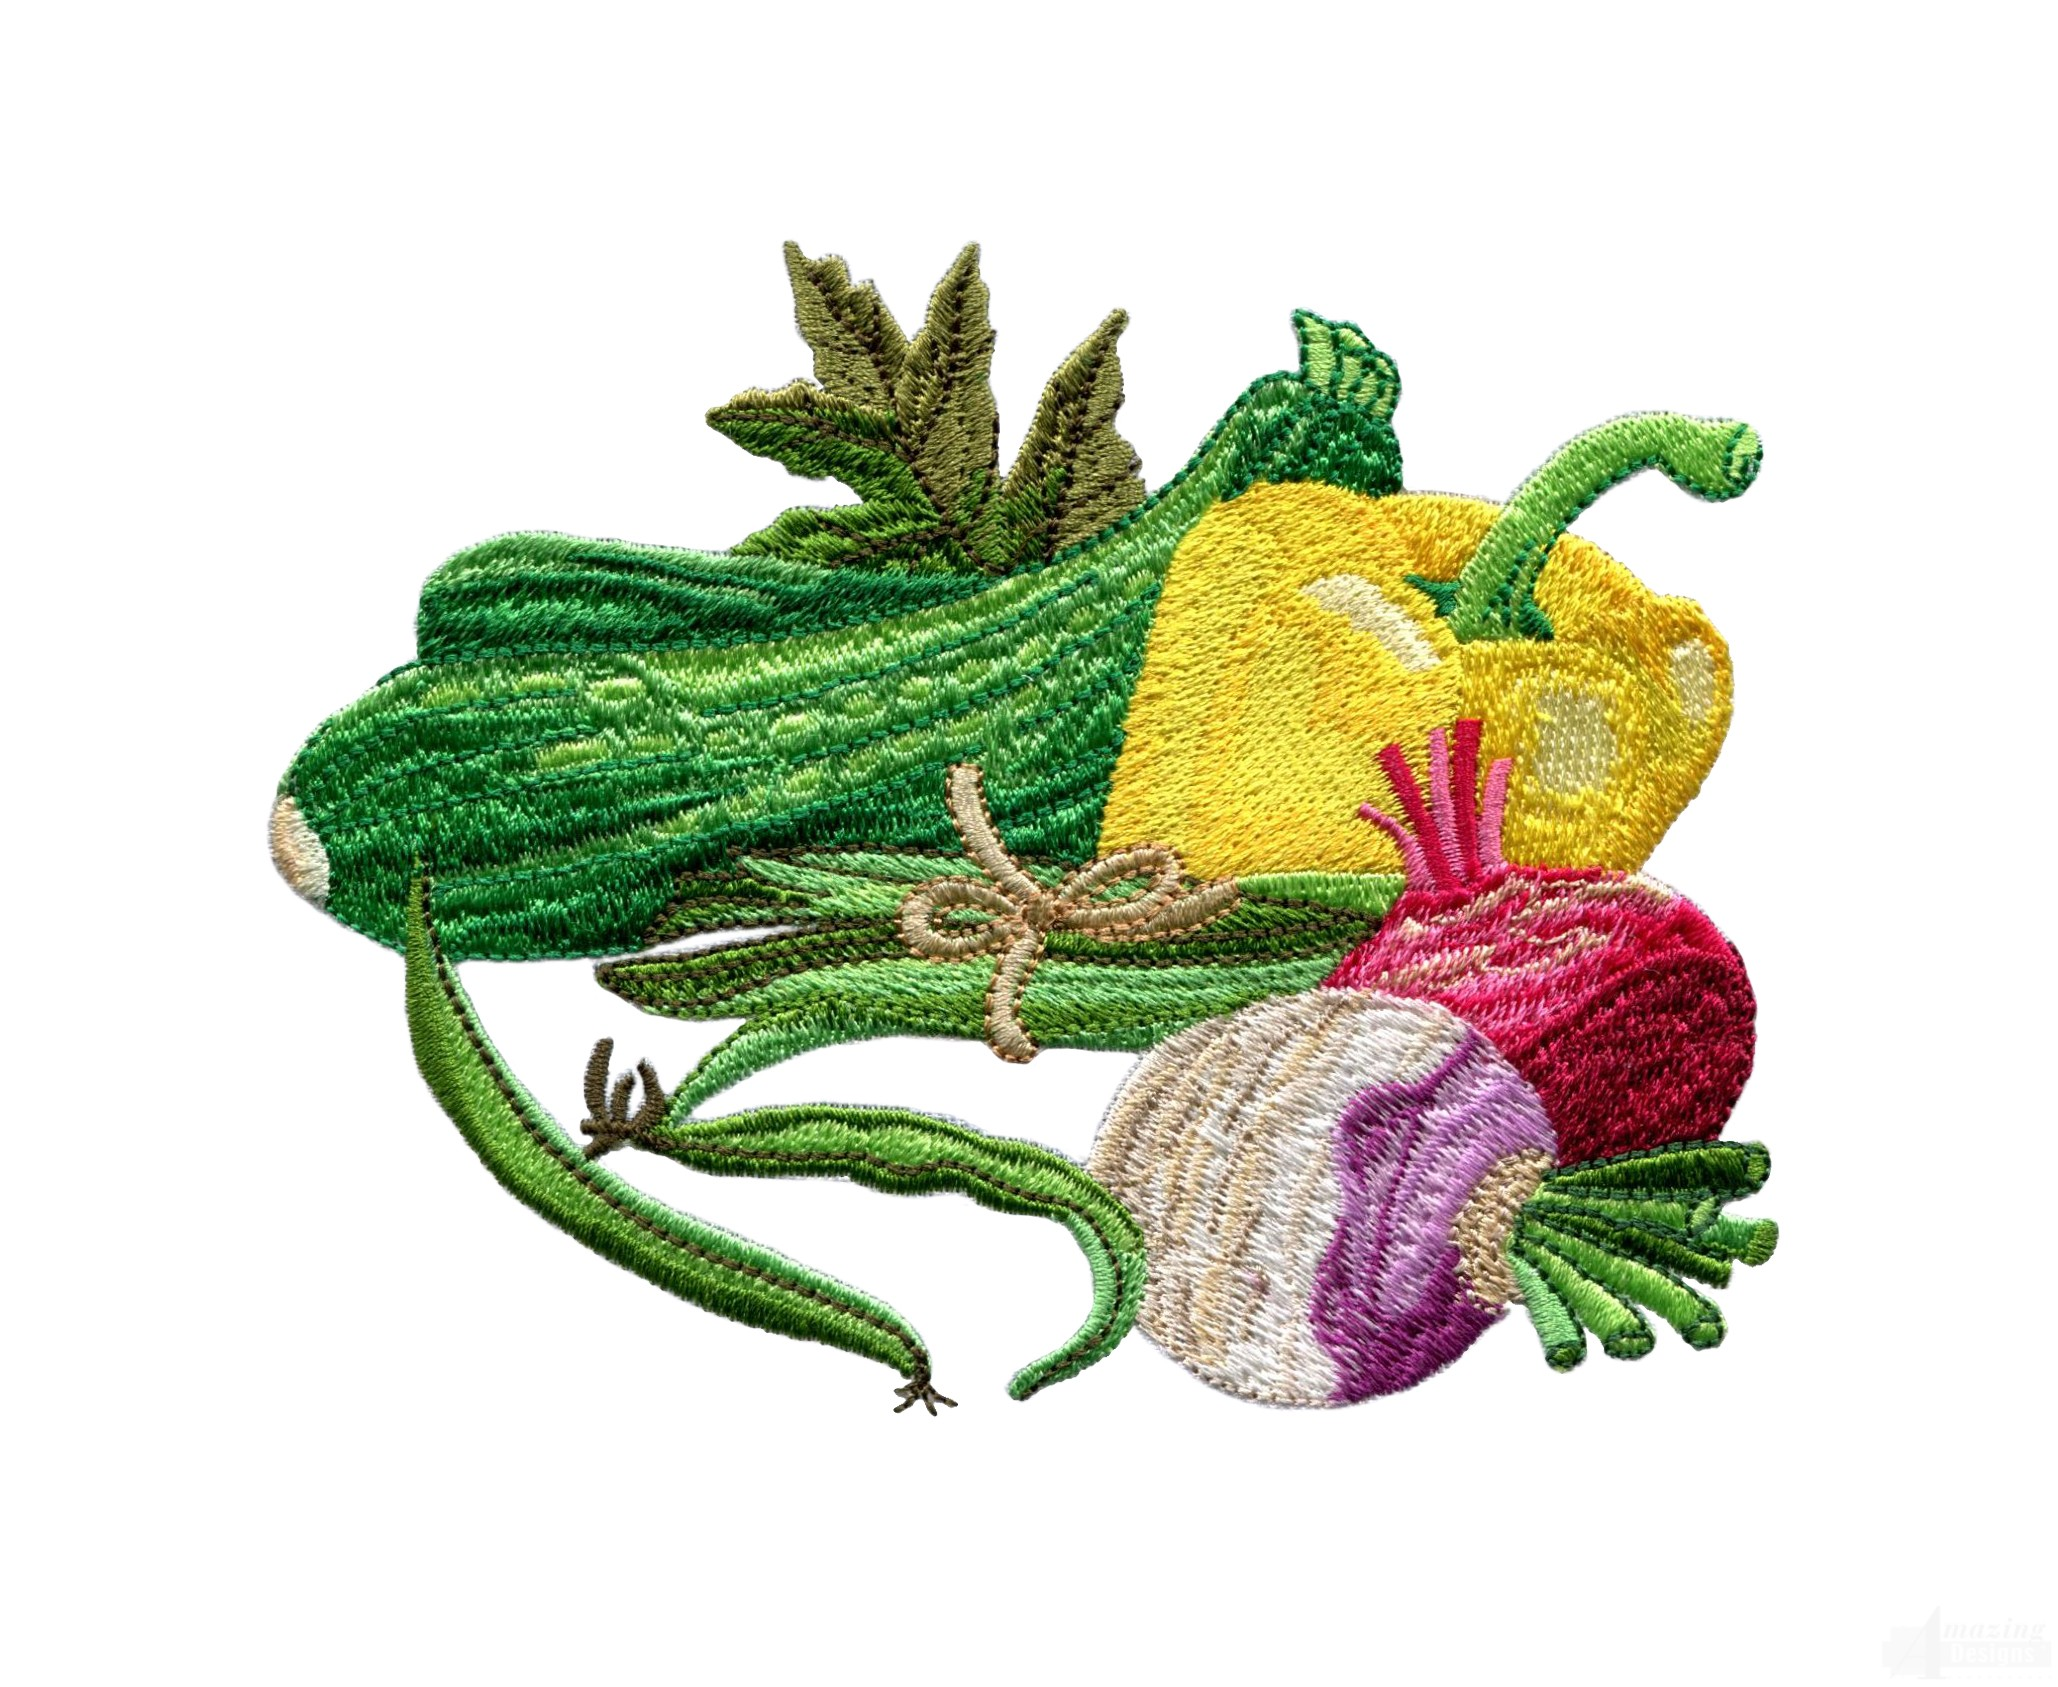 Garden assortment 4 embroidery design for Garden embroidery designs free